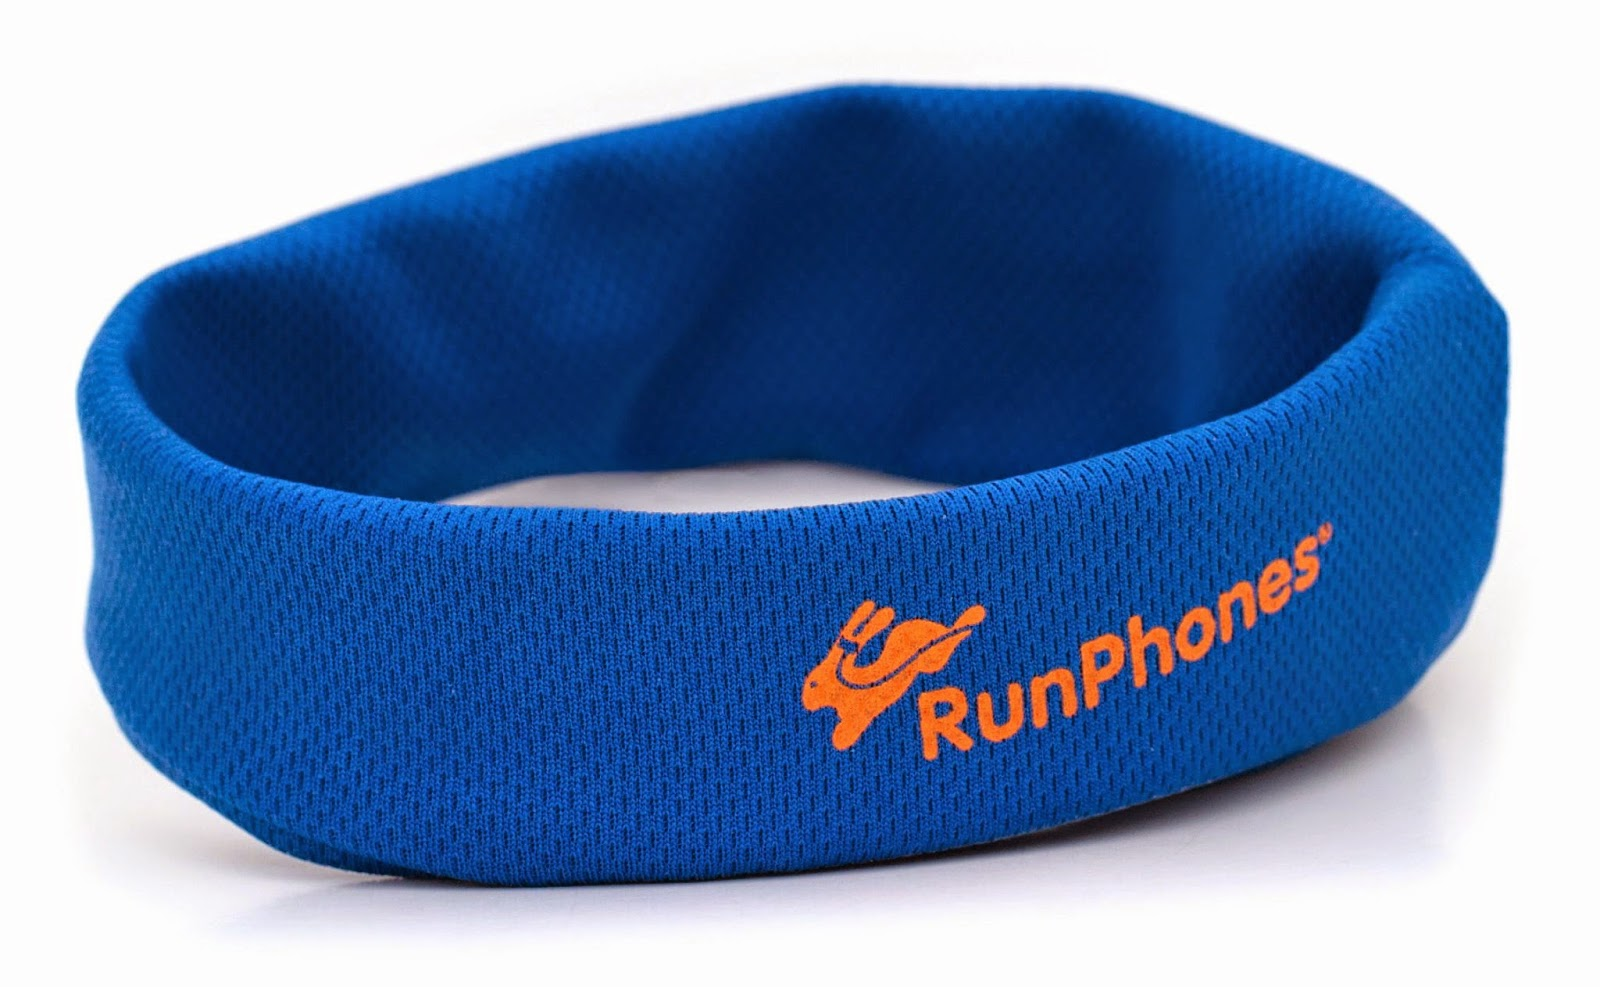 RunPhones Wireless Bluetooth Headphones from AcousticSheep